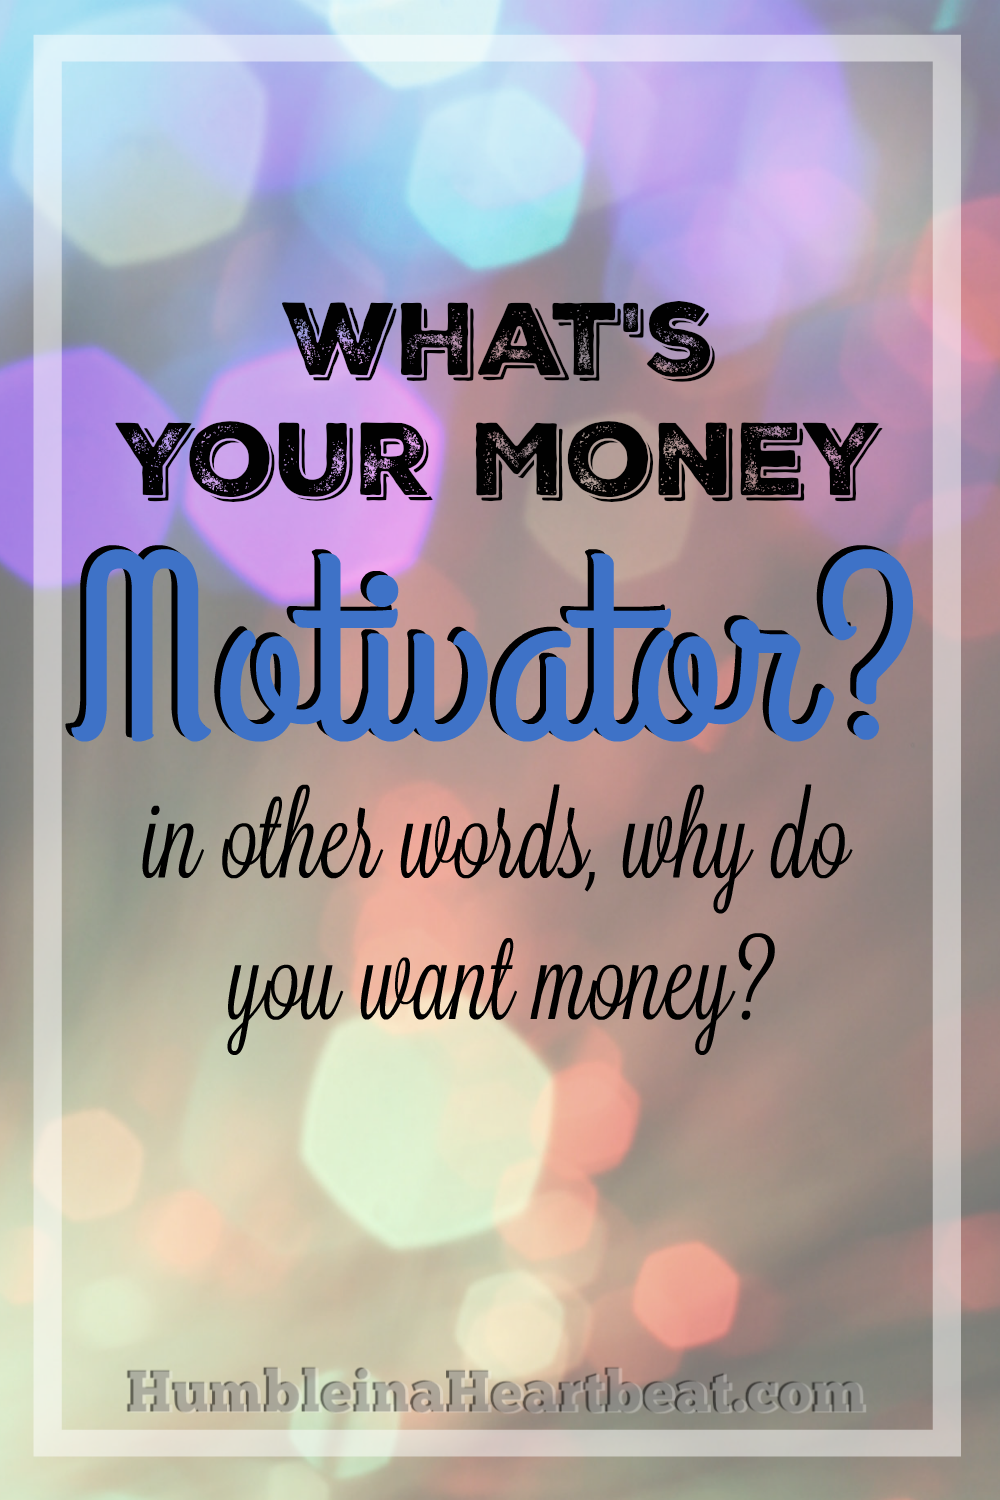 Should money be the reason why you are doing the things you are doing? When you find out the true reason why you want more money in your life, it may surprise you that you can get that for free after all.